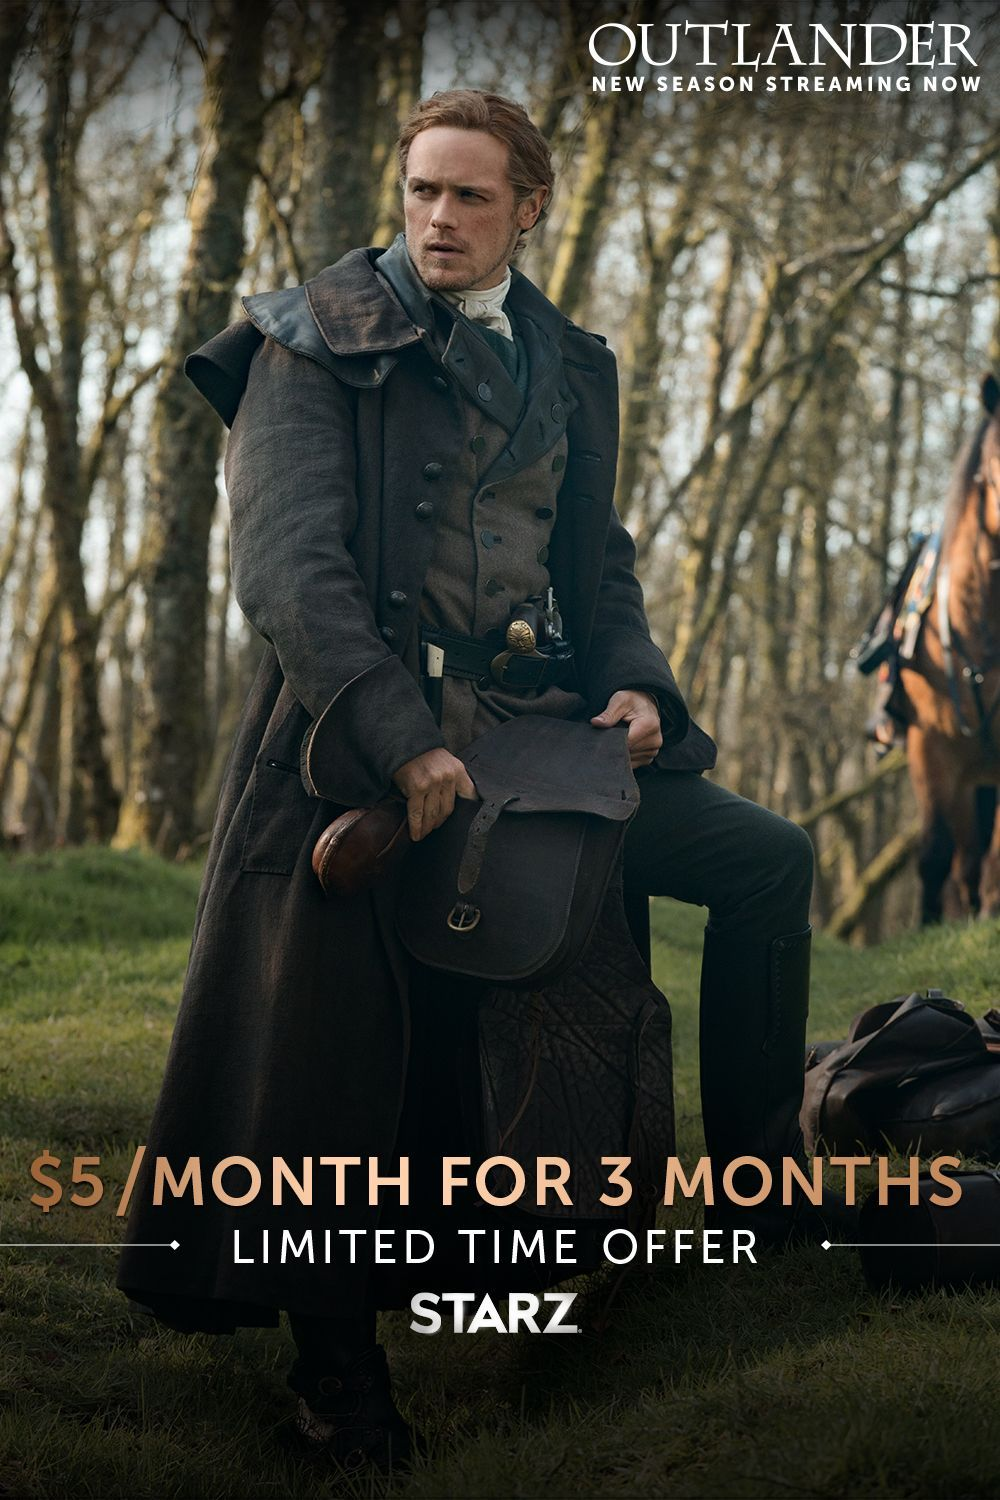 STARZ's special holiday offer, just for you. 5 per month